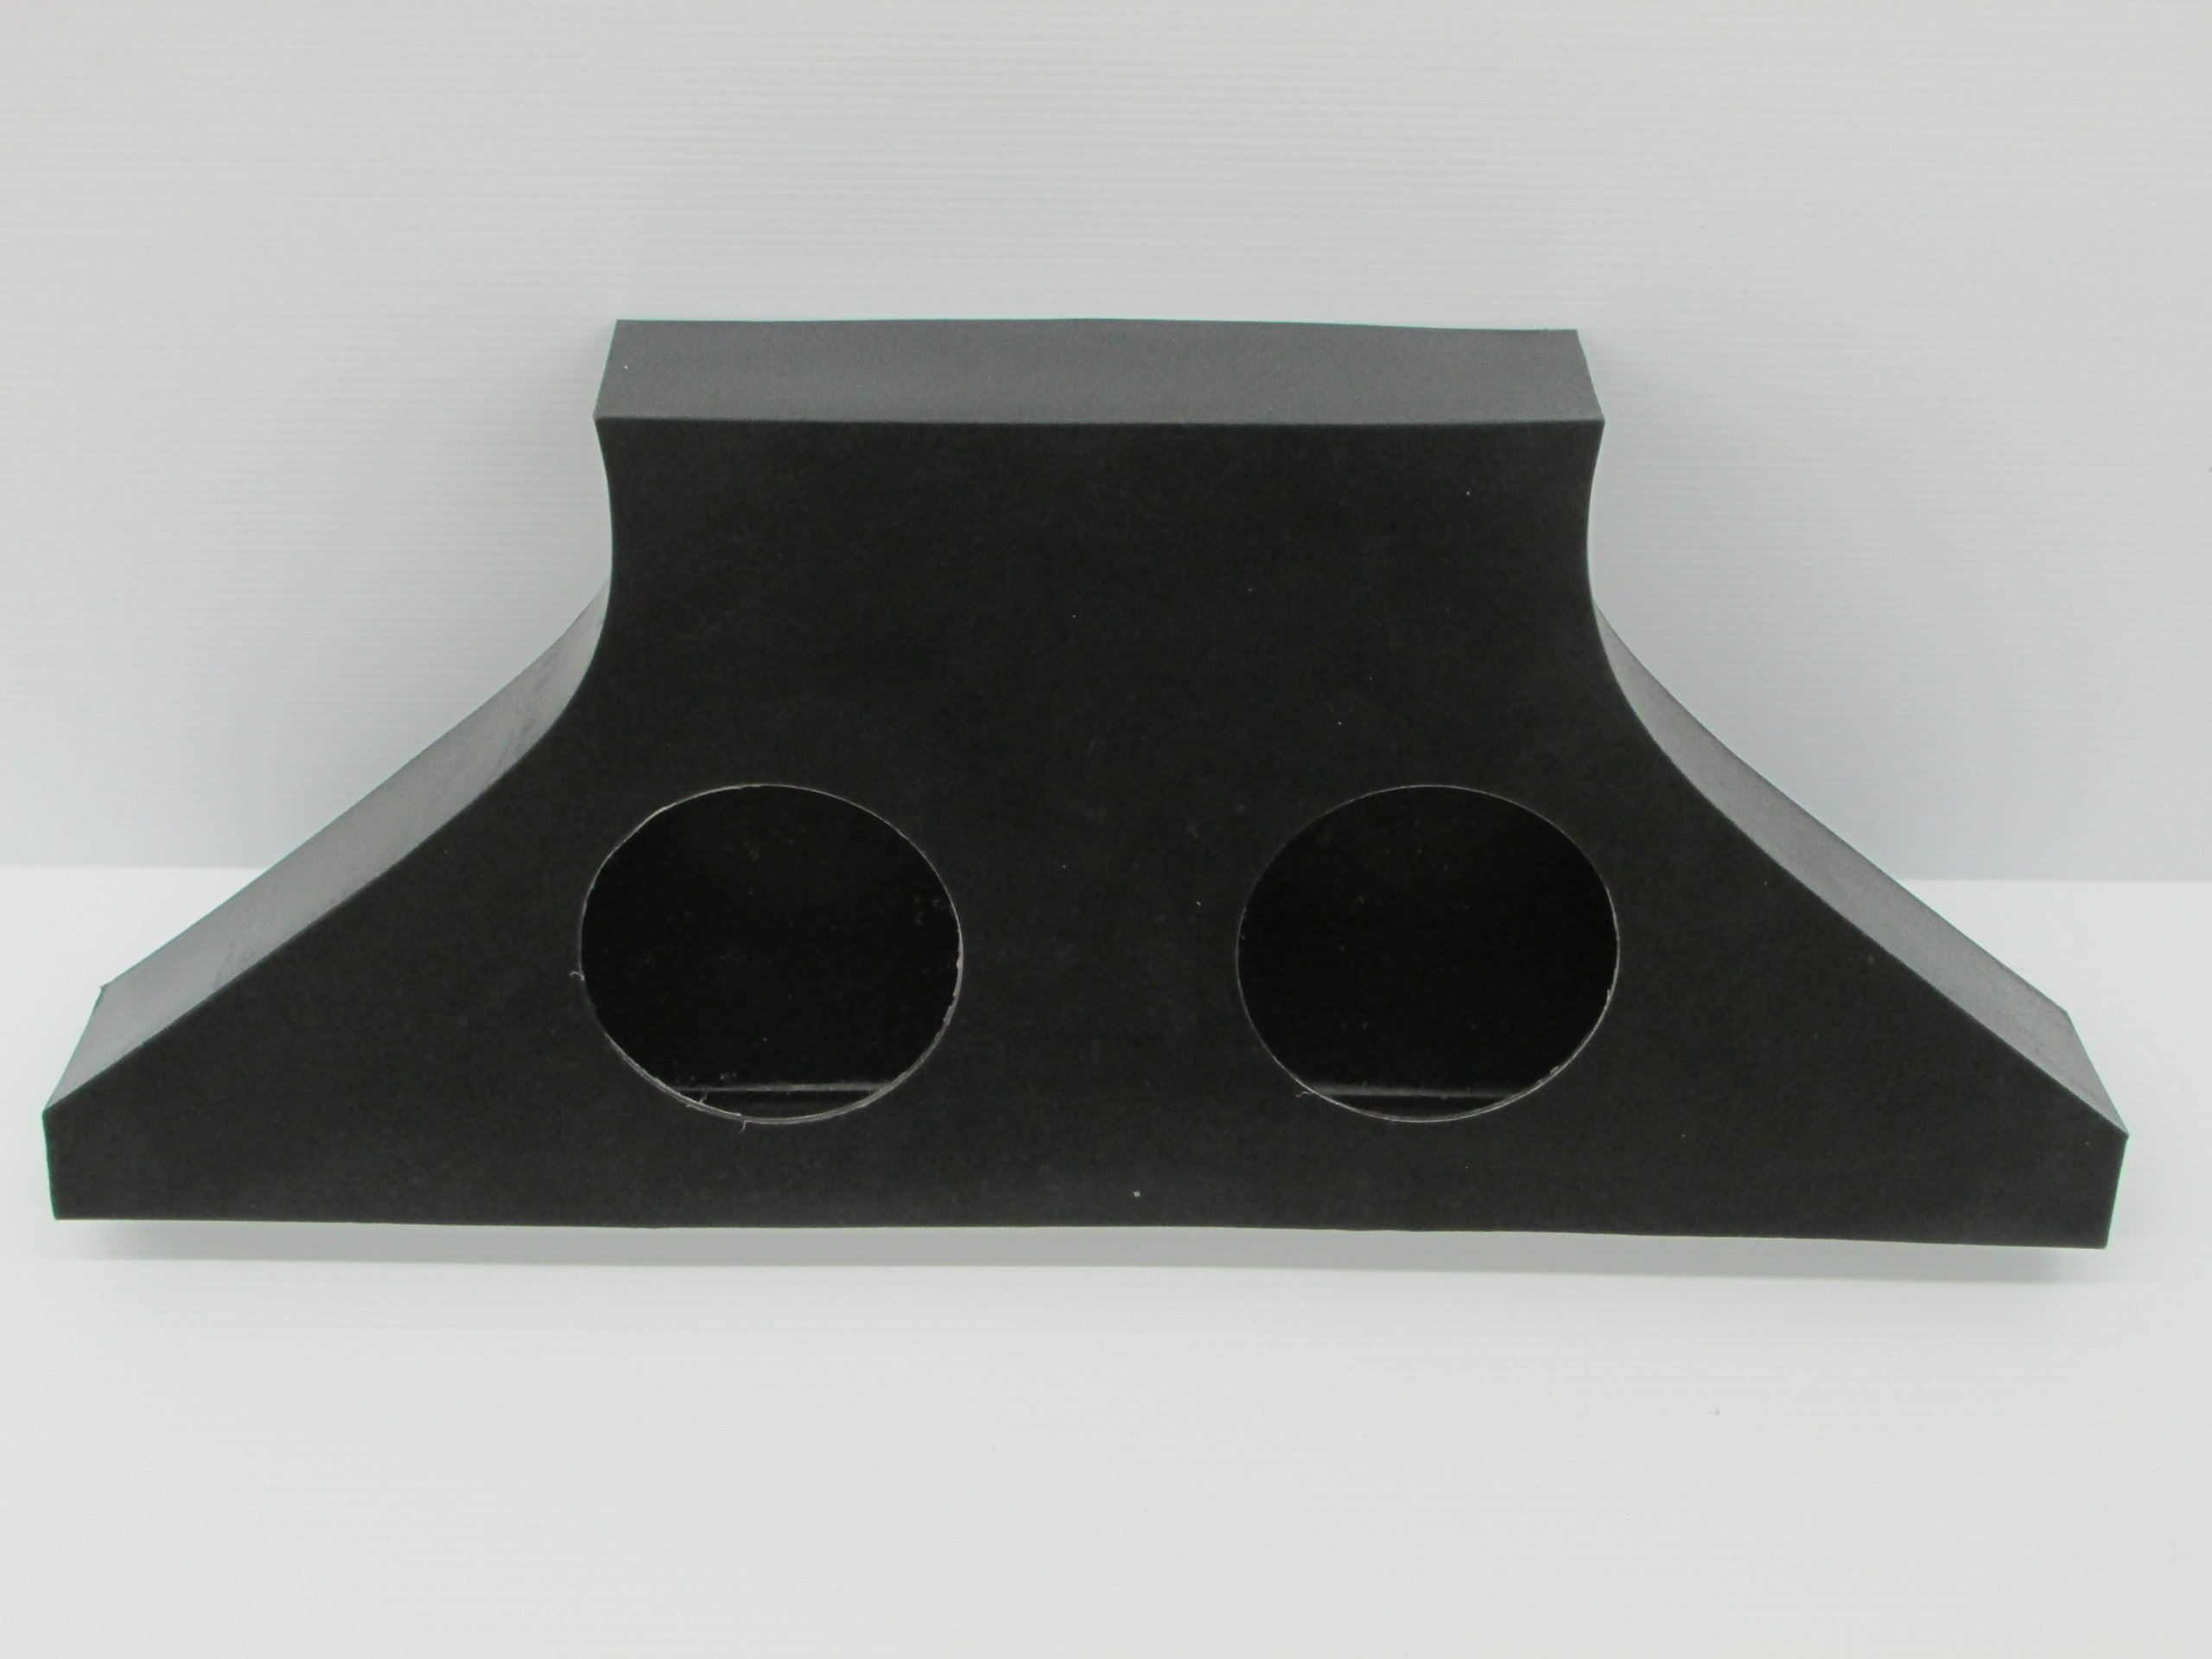 SD 2R2E -Polaris RZR Rear Empty Stereo Box by Galena